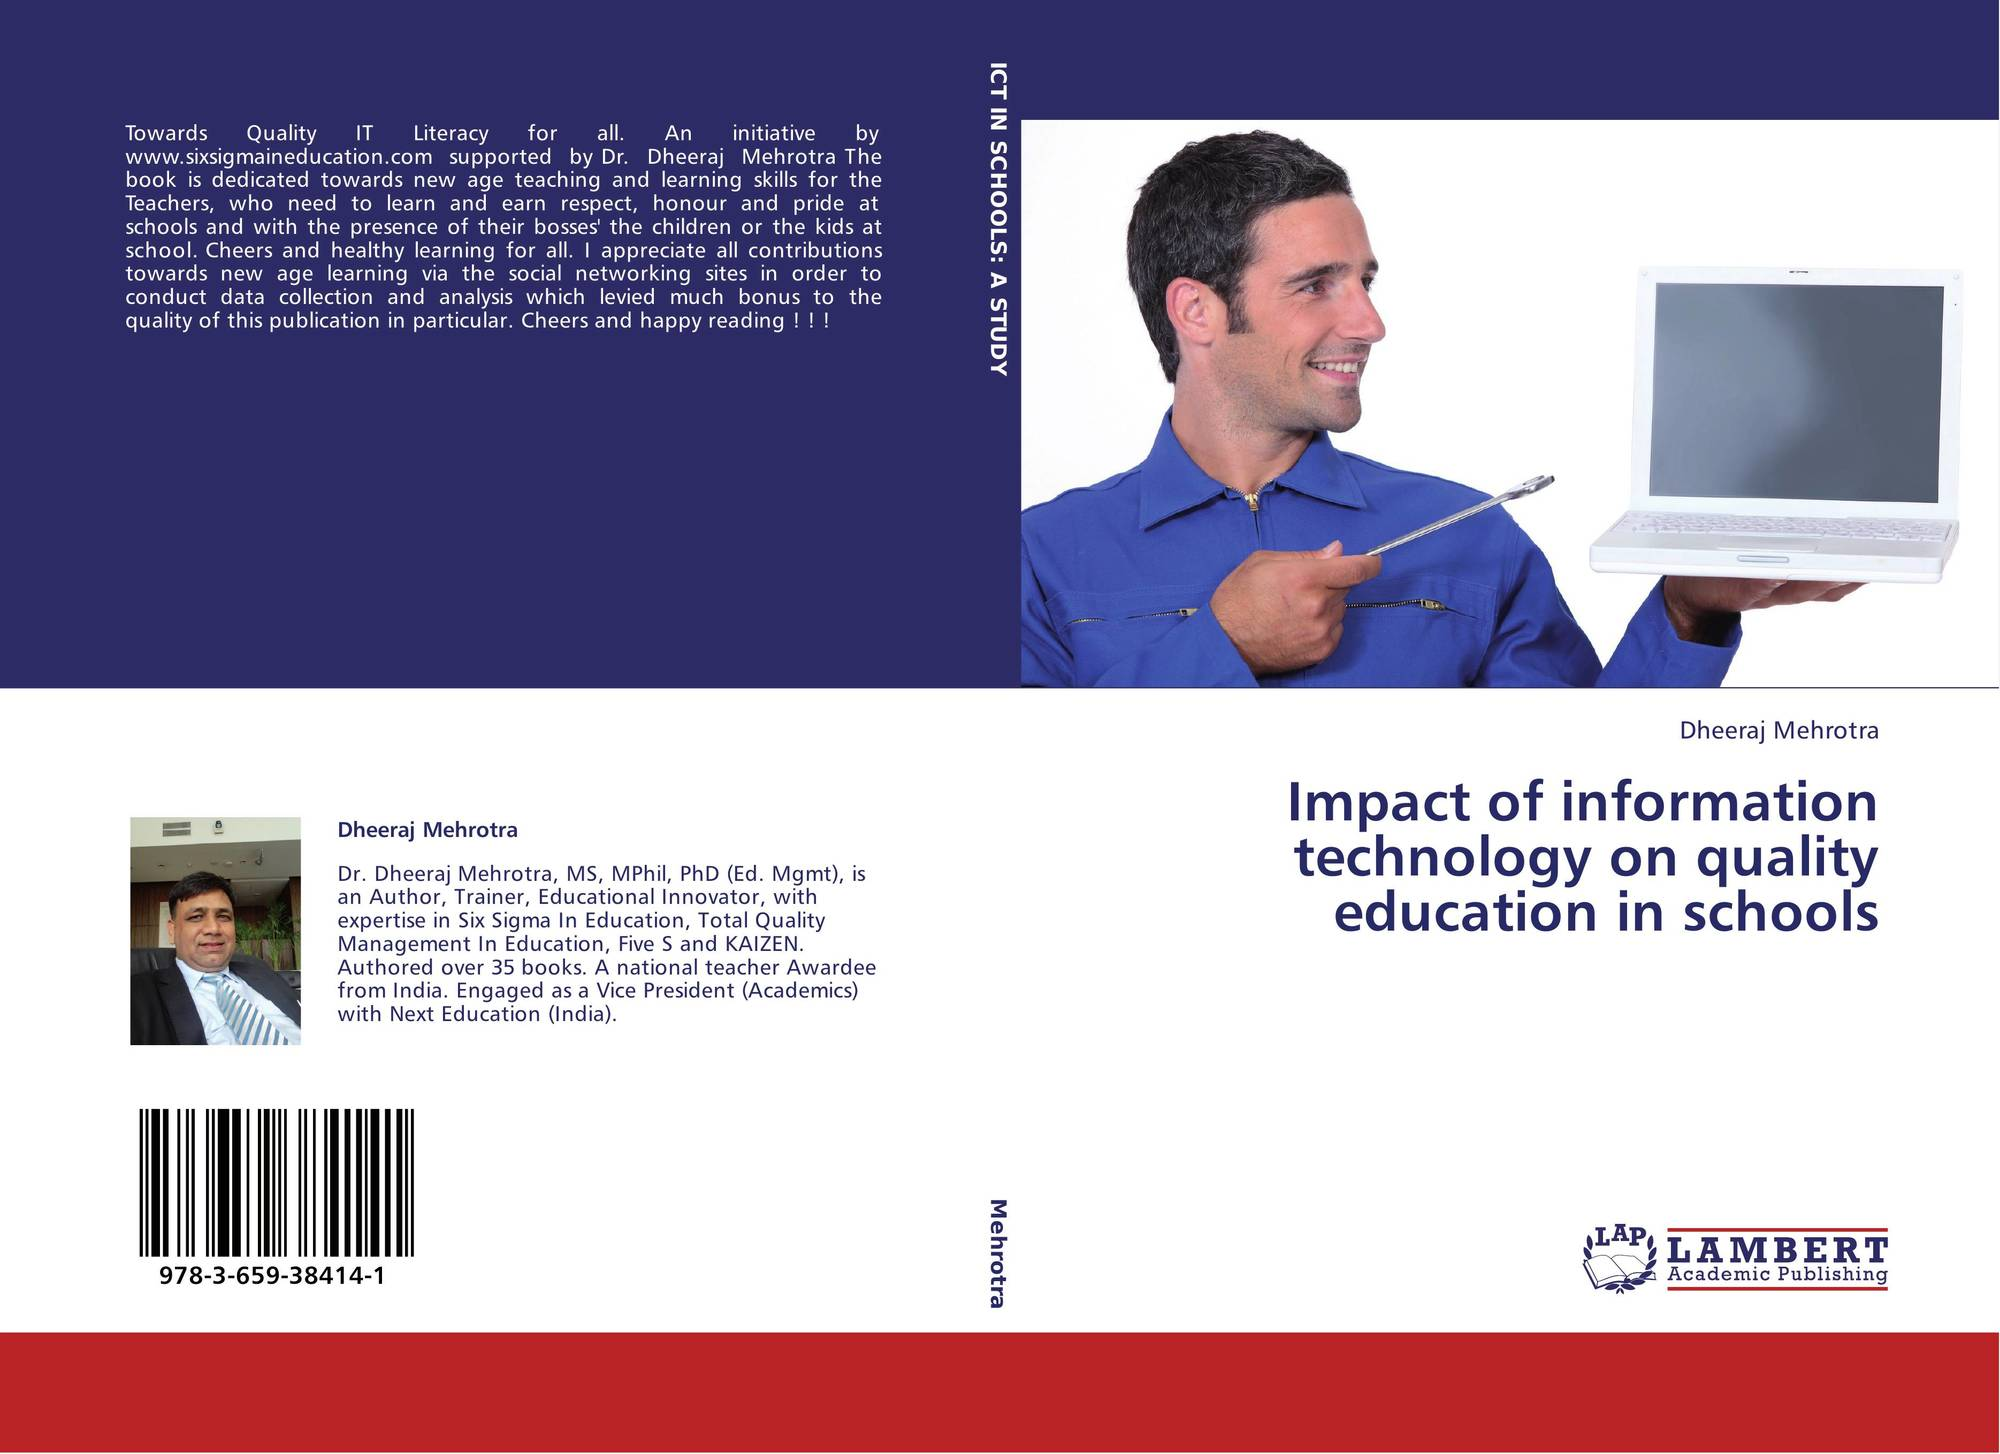 About Education Impact